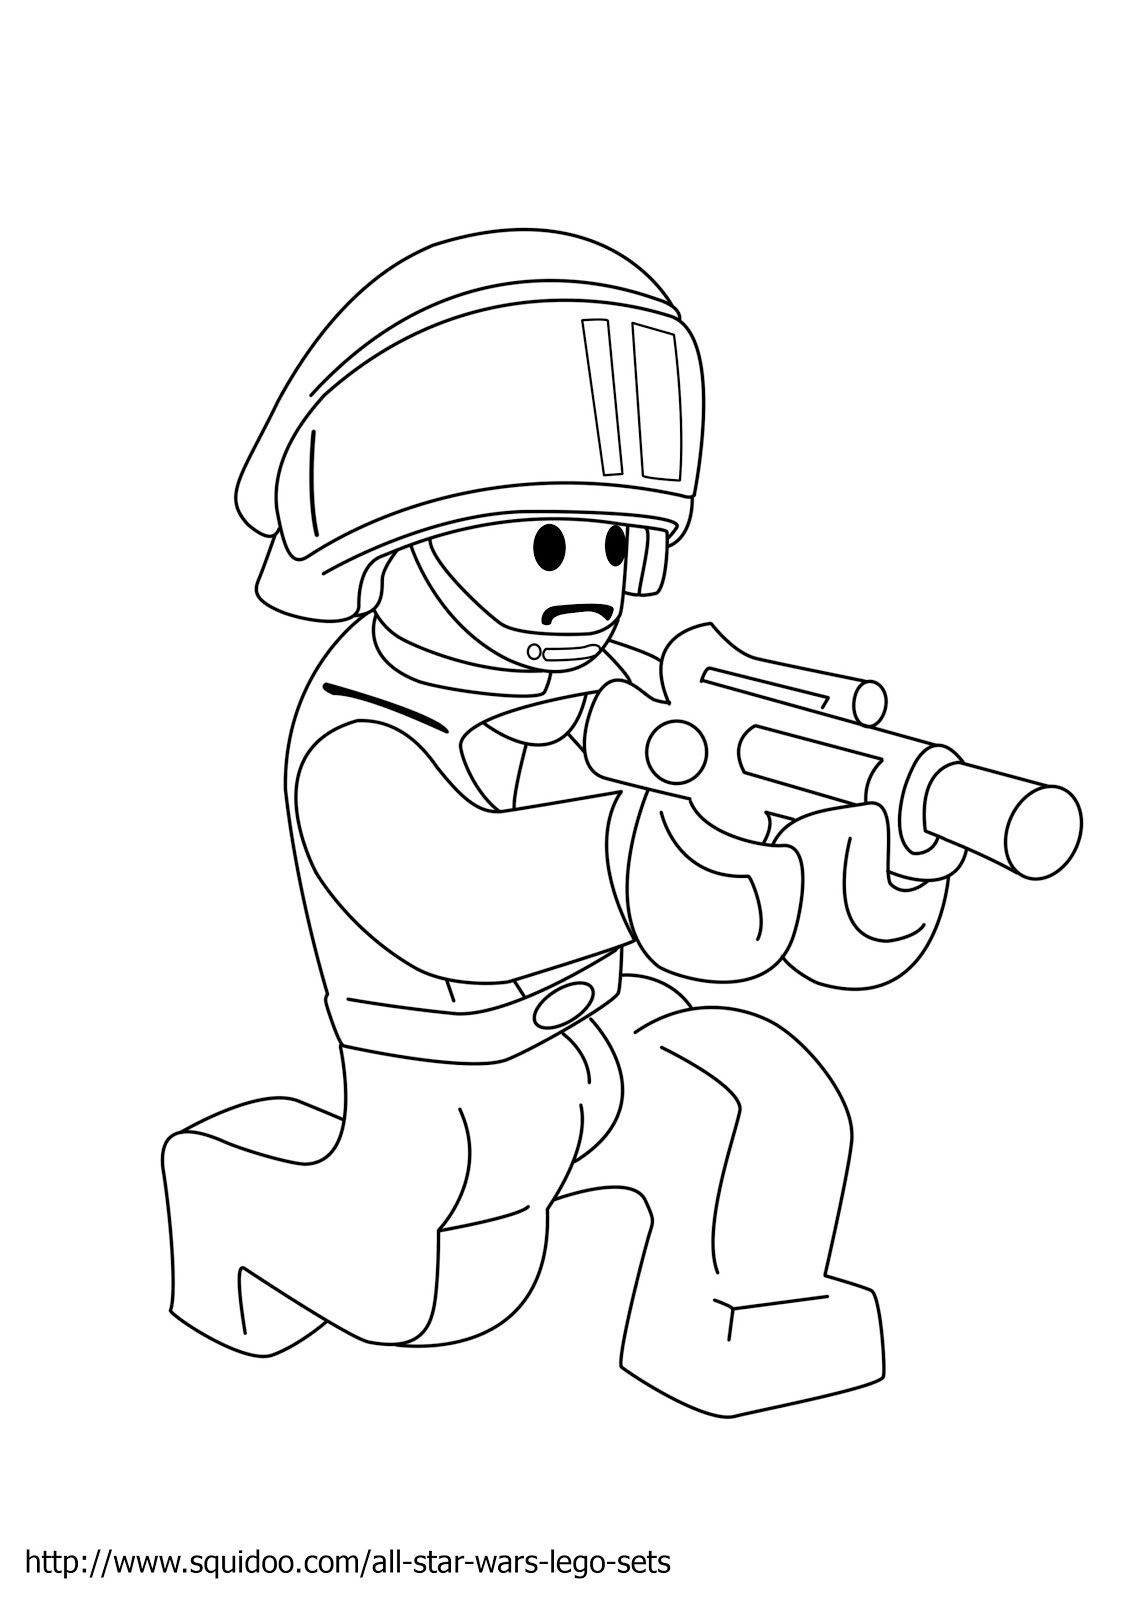 Lego Star Wars Coloring Pages Coloring Pages For Boys 12 Printable Coloring Pages In 2020 Dinosaur Coloring Pages Coloring Pages Lego Army